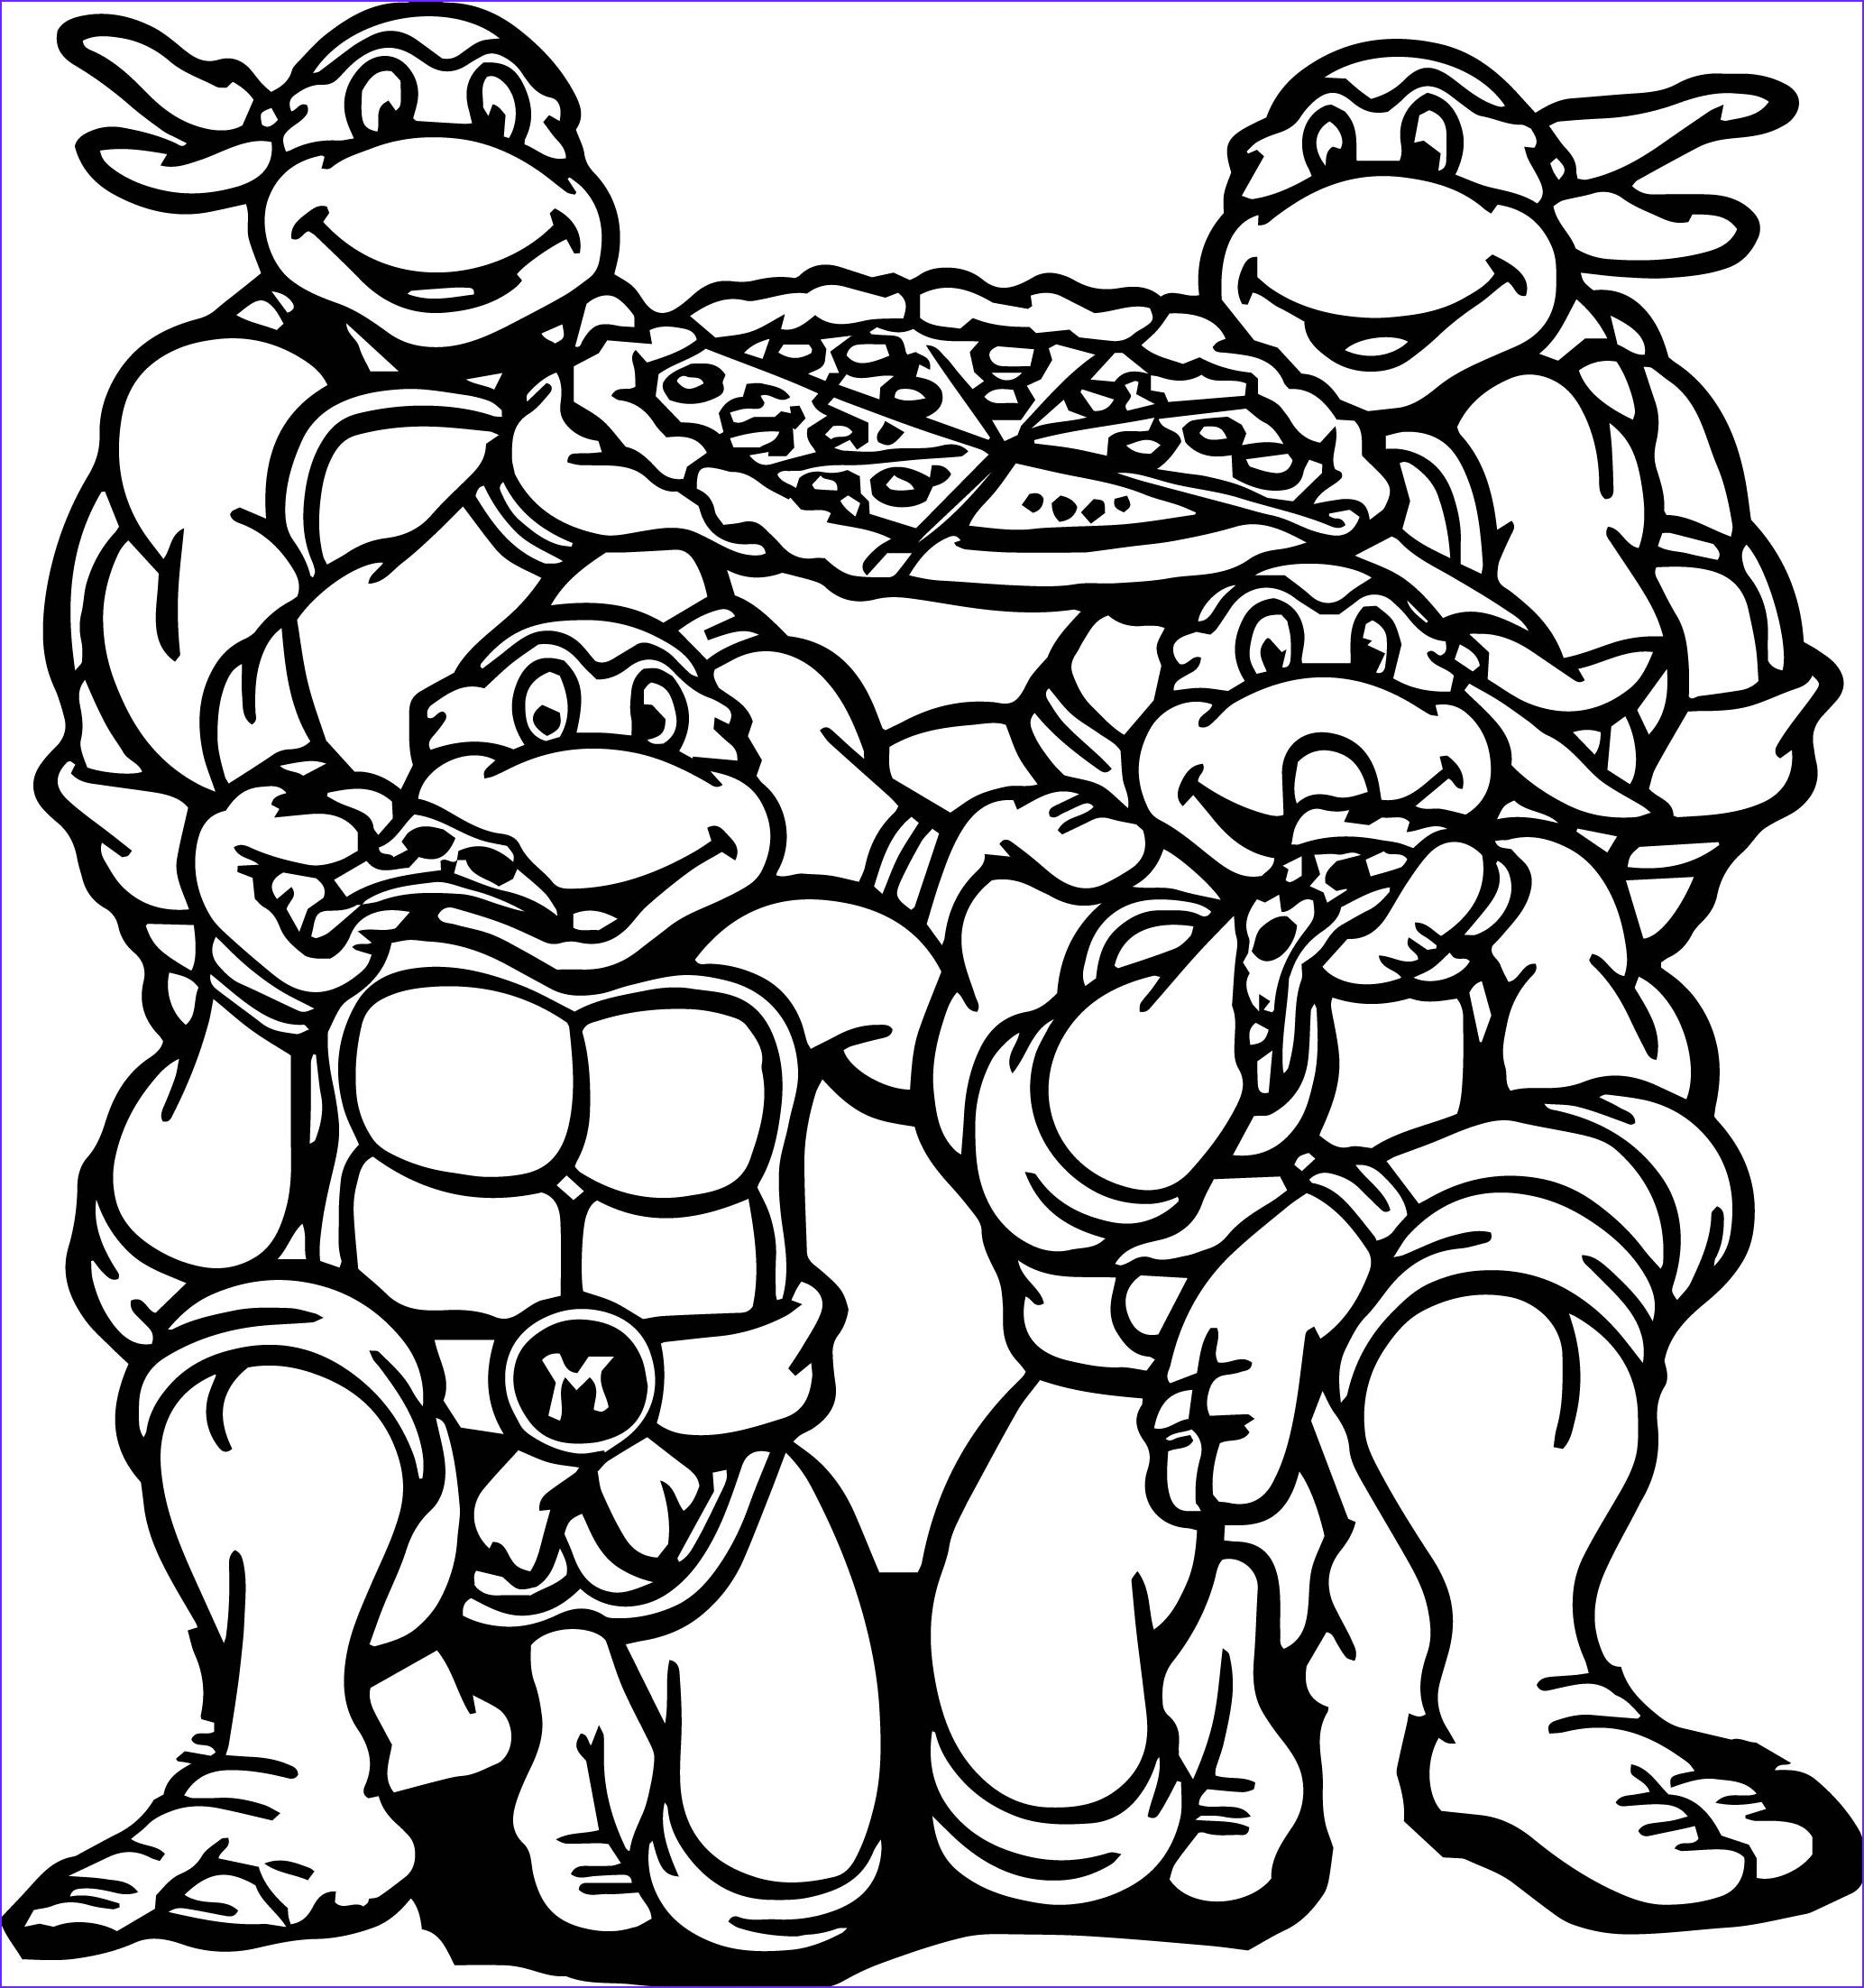 Pin By Julie Brossard On Carte De Colorat Turtle Coloring Pages Ninja Turtle Coloring Pages Pokemon Coloring Pages